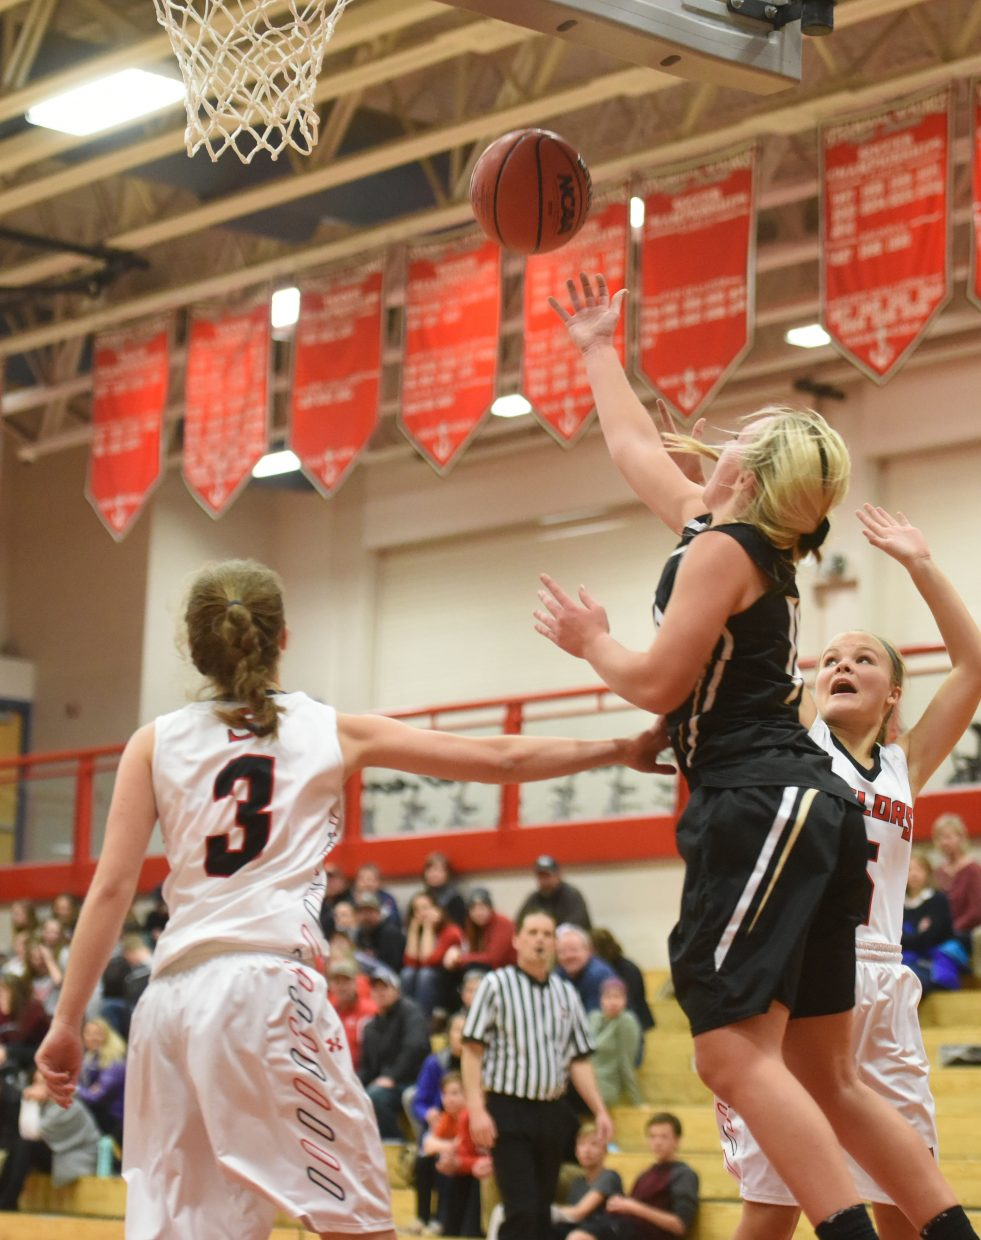 Battle Mountain's Dylan Barker goes up and under with a shot Tuesday against Steamboat. She finished with 18 points to lead all scorers.